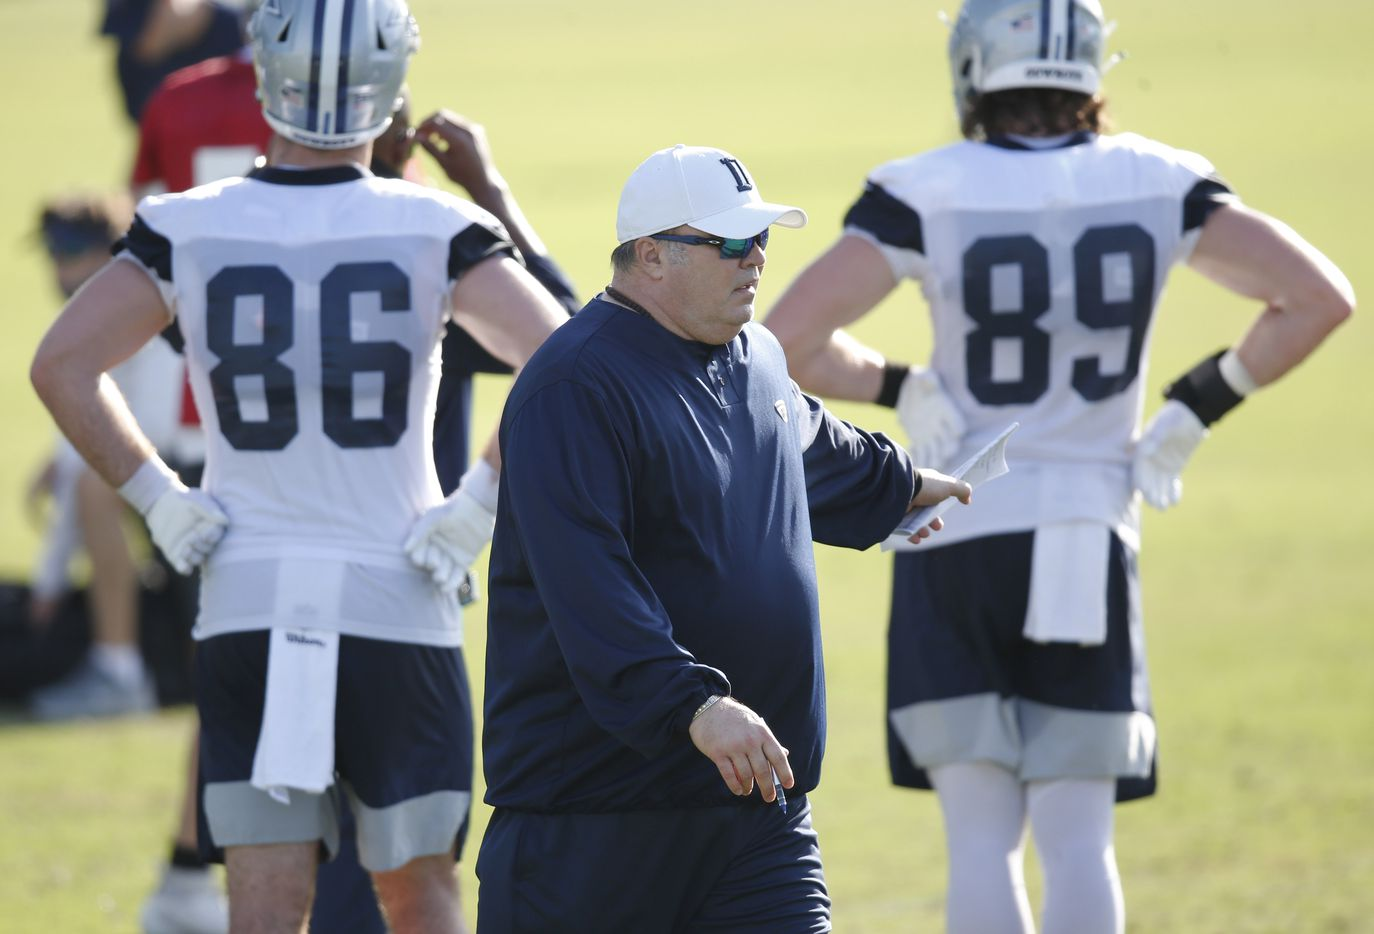 Dallas Cowboys head coach Mike McCarthy during the first day of training camp at Dallas Cowboys headquarters at The Star in Frisco, Texas on Friday, August 14, 2020. (Vernon Bryant/The Dallas Morning News)